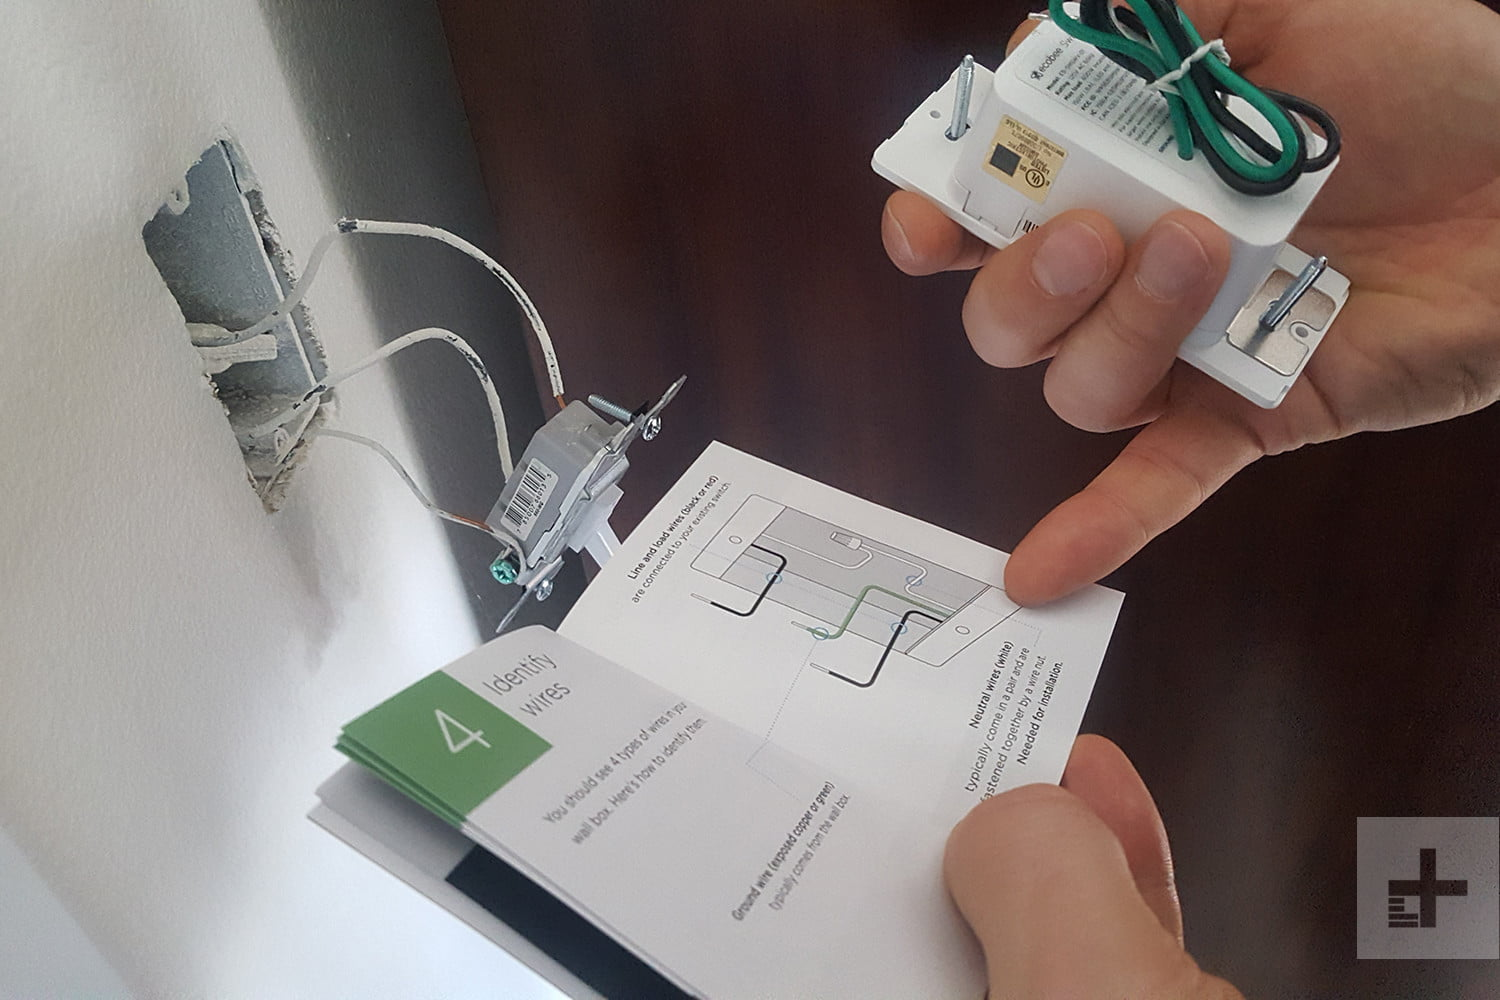 Ecobee Switch Review More Than Just A Digital Trends Book Manual On Quick Basic House Wiring Switches Loads Switchplus 6